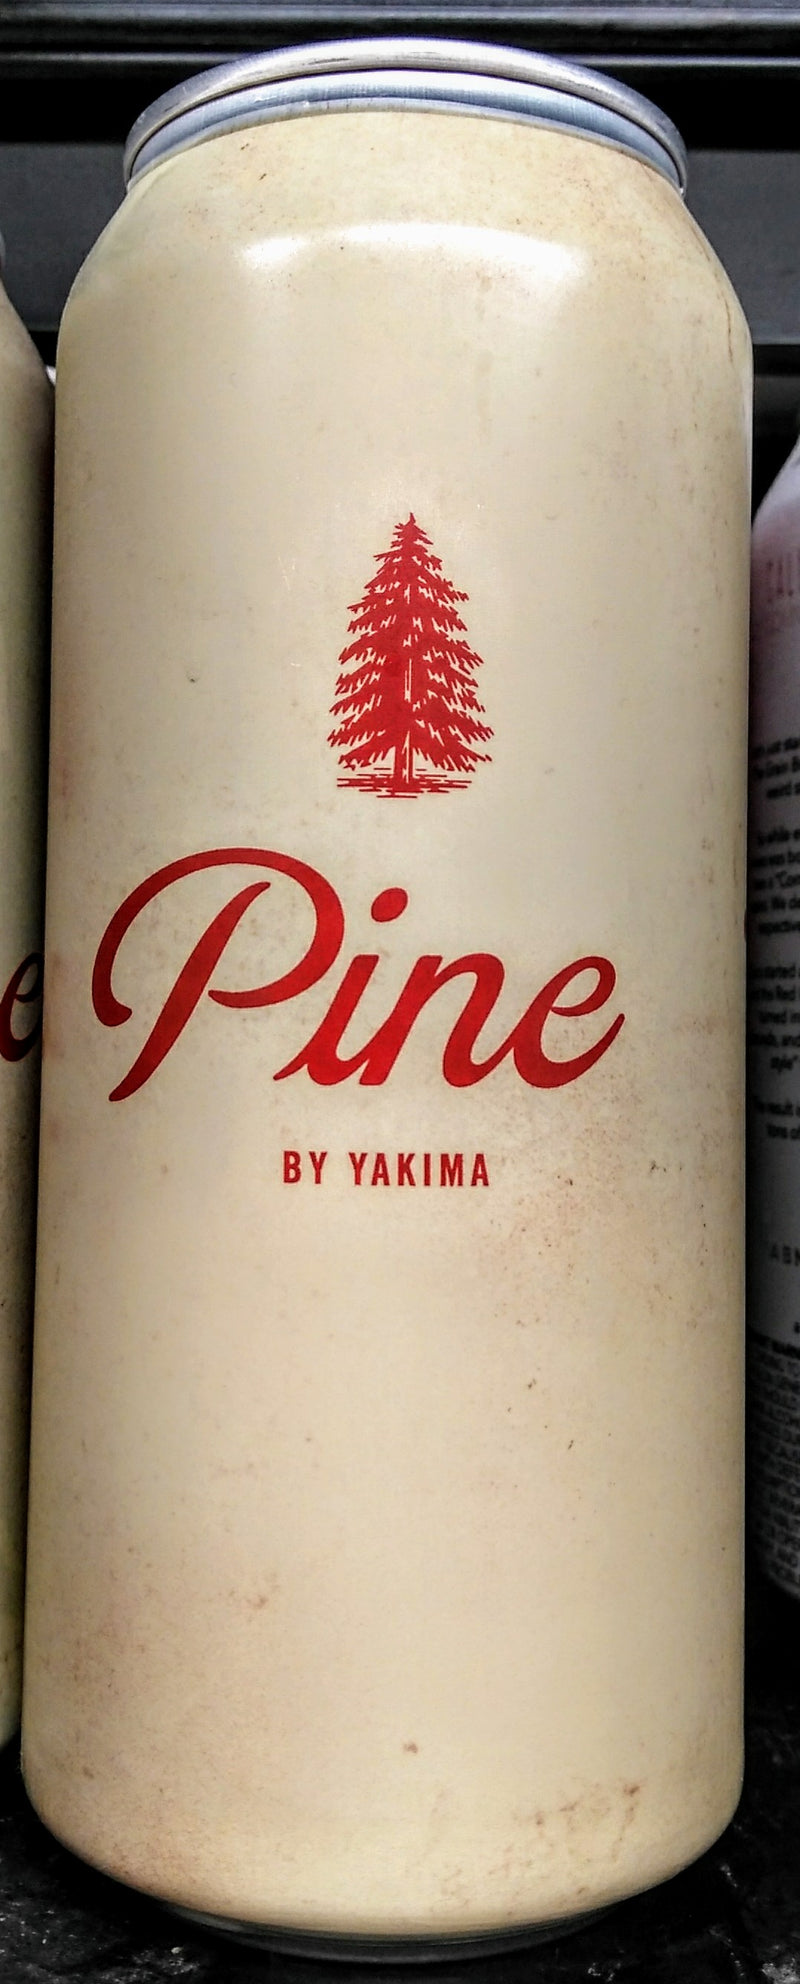 PARIAH BREWING CO. PINE BY YAKIMA HAZY IPA 16oz can